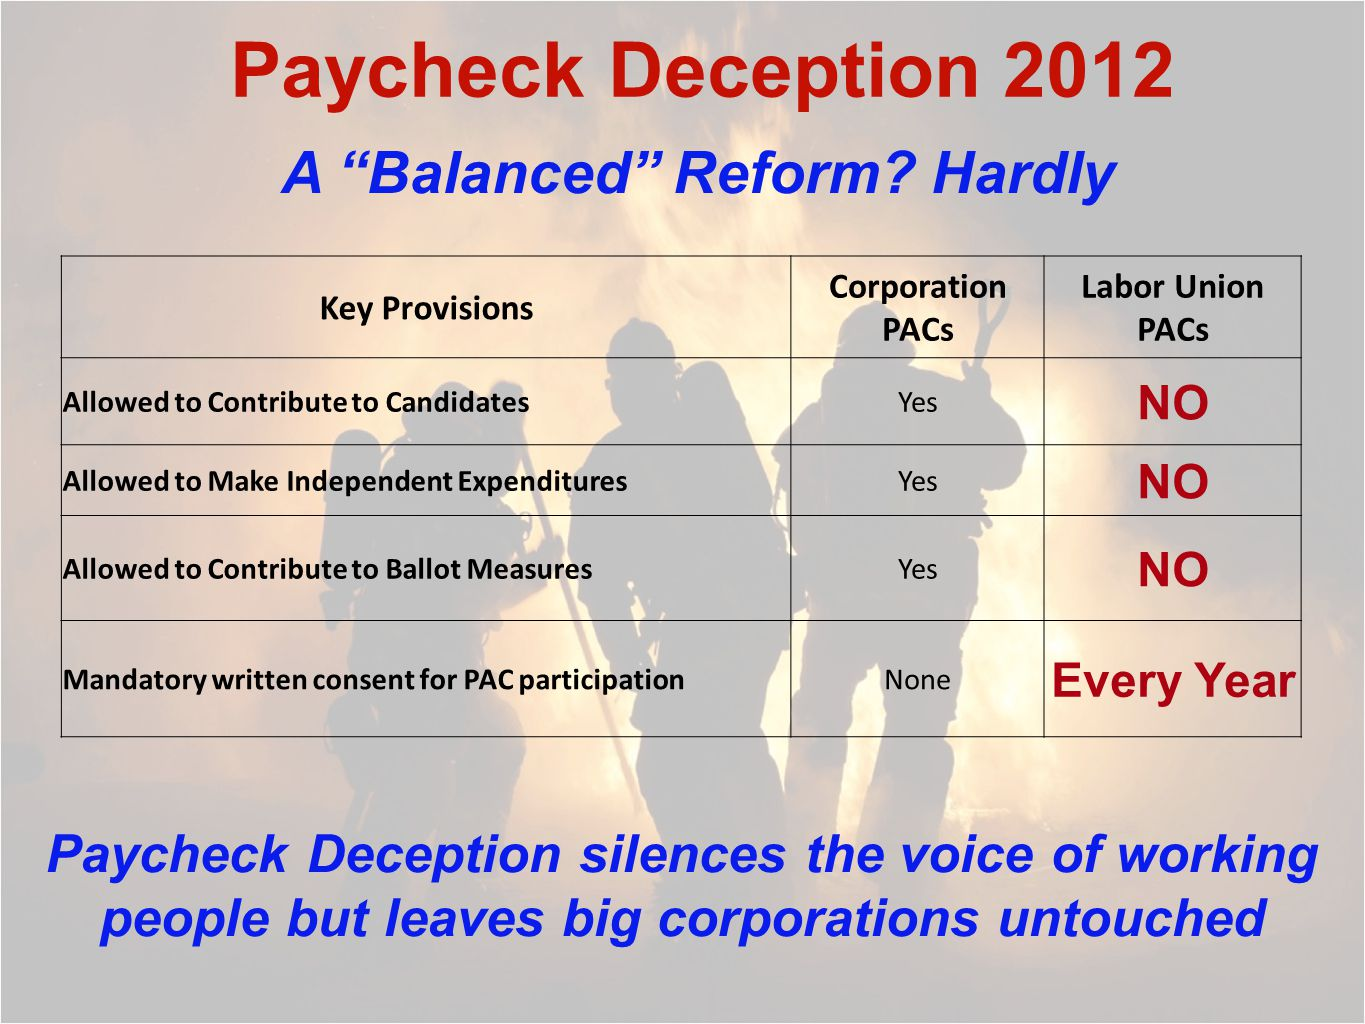 Paycheck Deception 2012 Key Provisions Corporation PACs Labor Union PACs Allowed to Contribute to CandidatesYes NO Allowed to Make Independent ExpendituresYes NO Allowed to Contribute to Ballot MeasuresYes NO Mandatory written consent for PAC participationNone Every Year Paycheck Deception silences the voice of working people but leaves big corporations untouched A Balanced Reform.